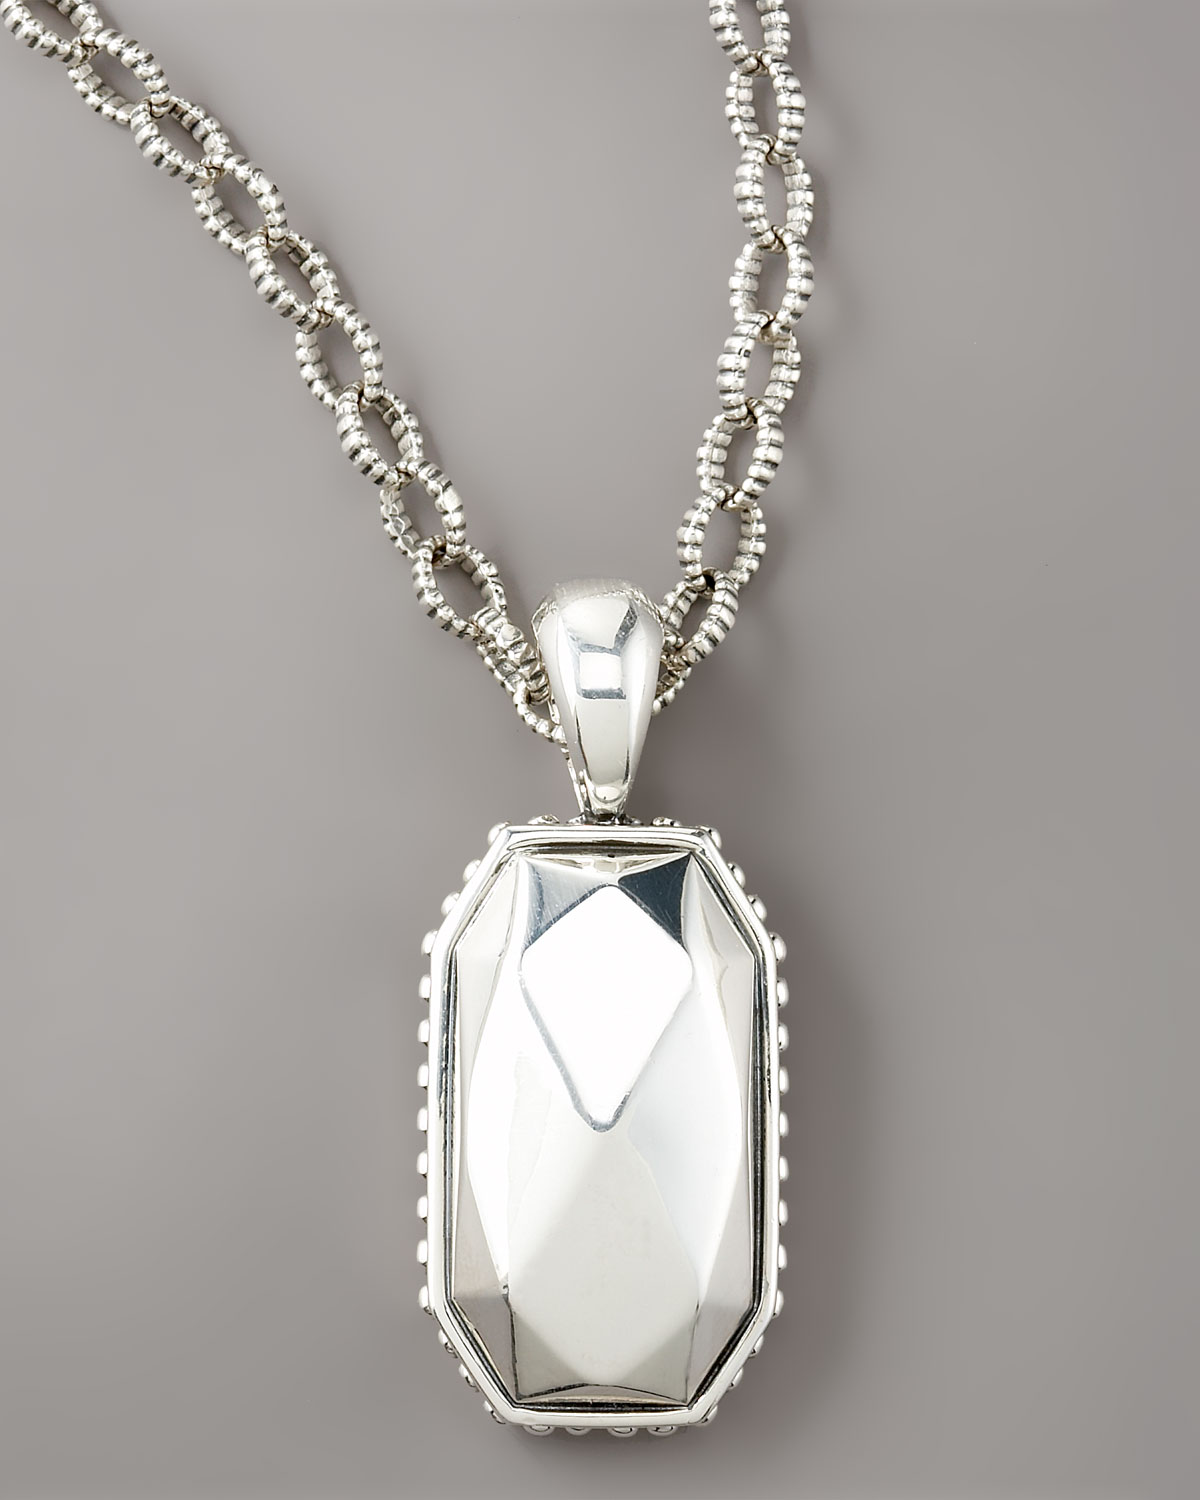 Lyst lagos rock pendant necklace in metallic gallery mozeypictures Images